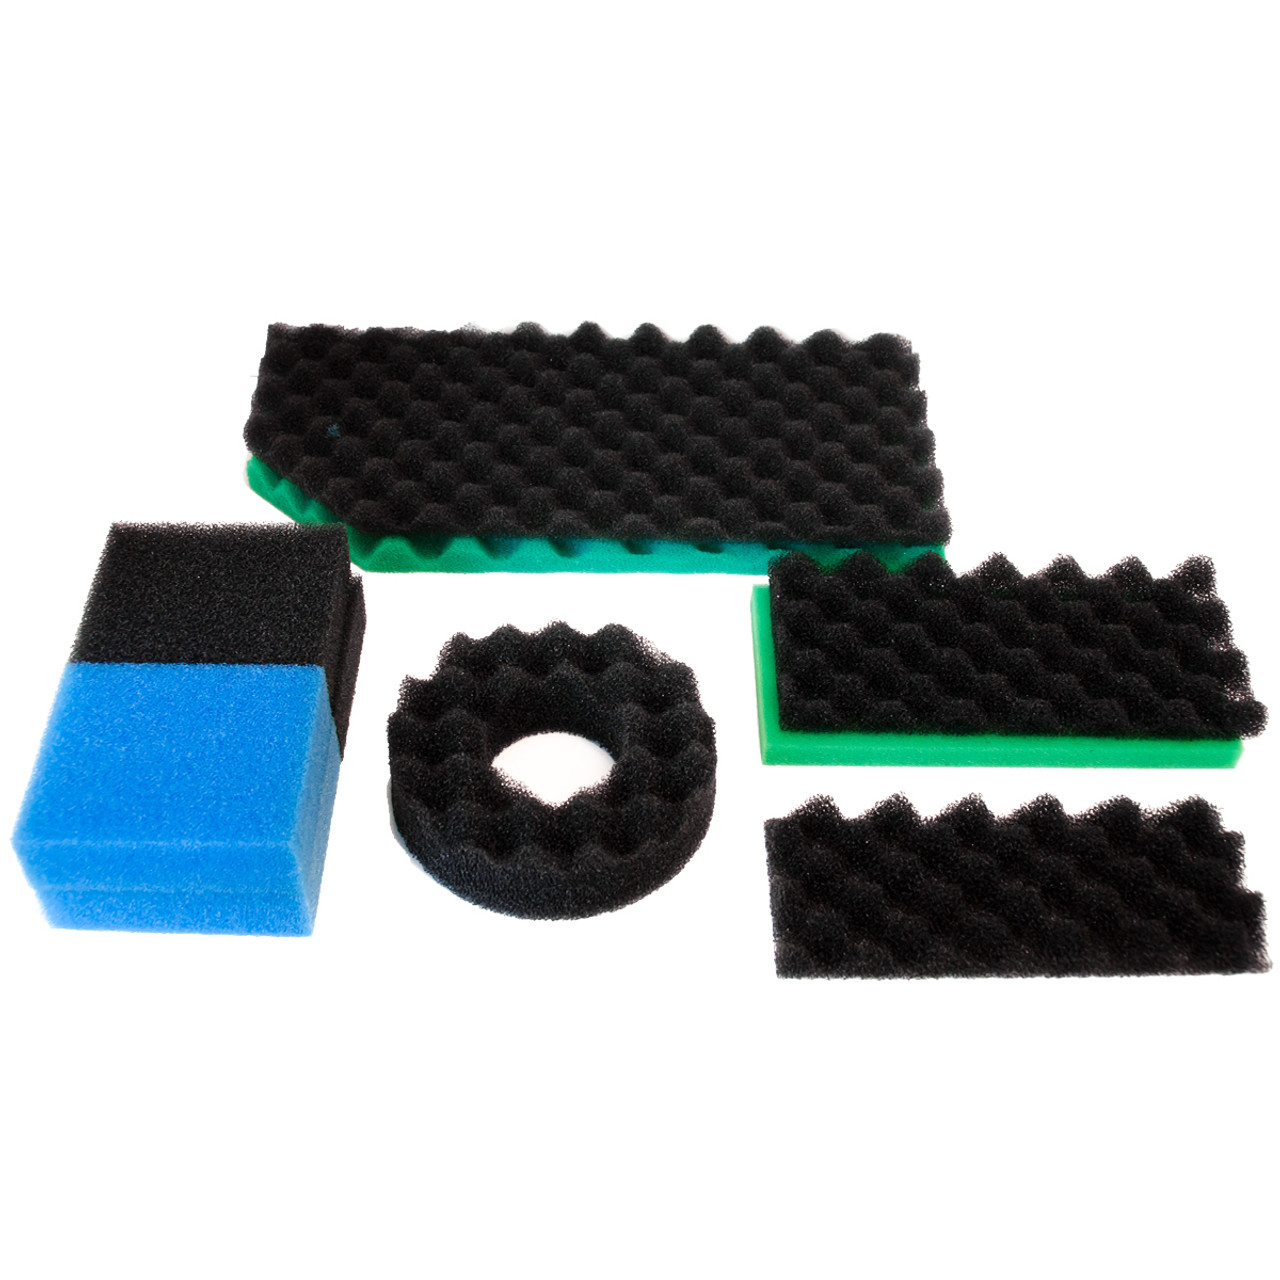 18in x 25in Per Set Of 3 High Quality Media 3-Piece Pond Filter Foam Packed